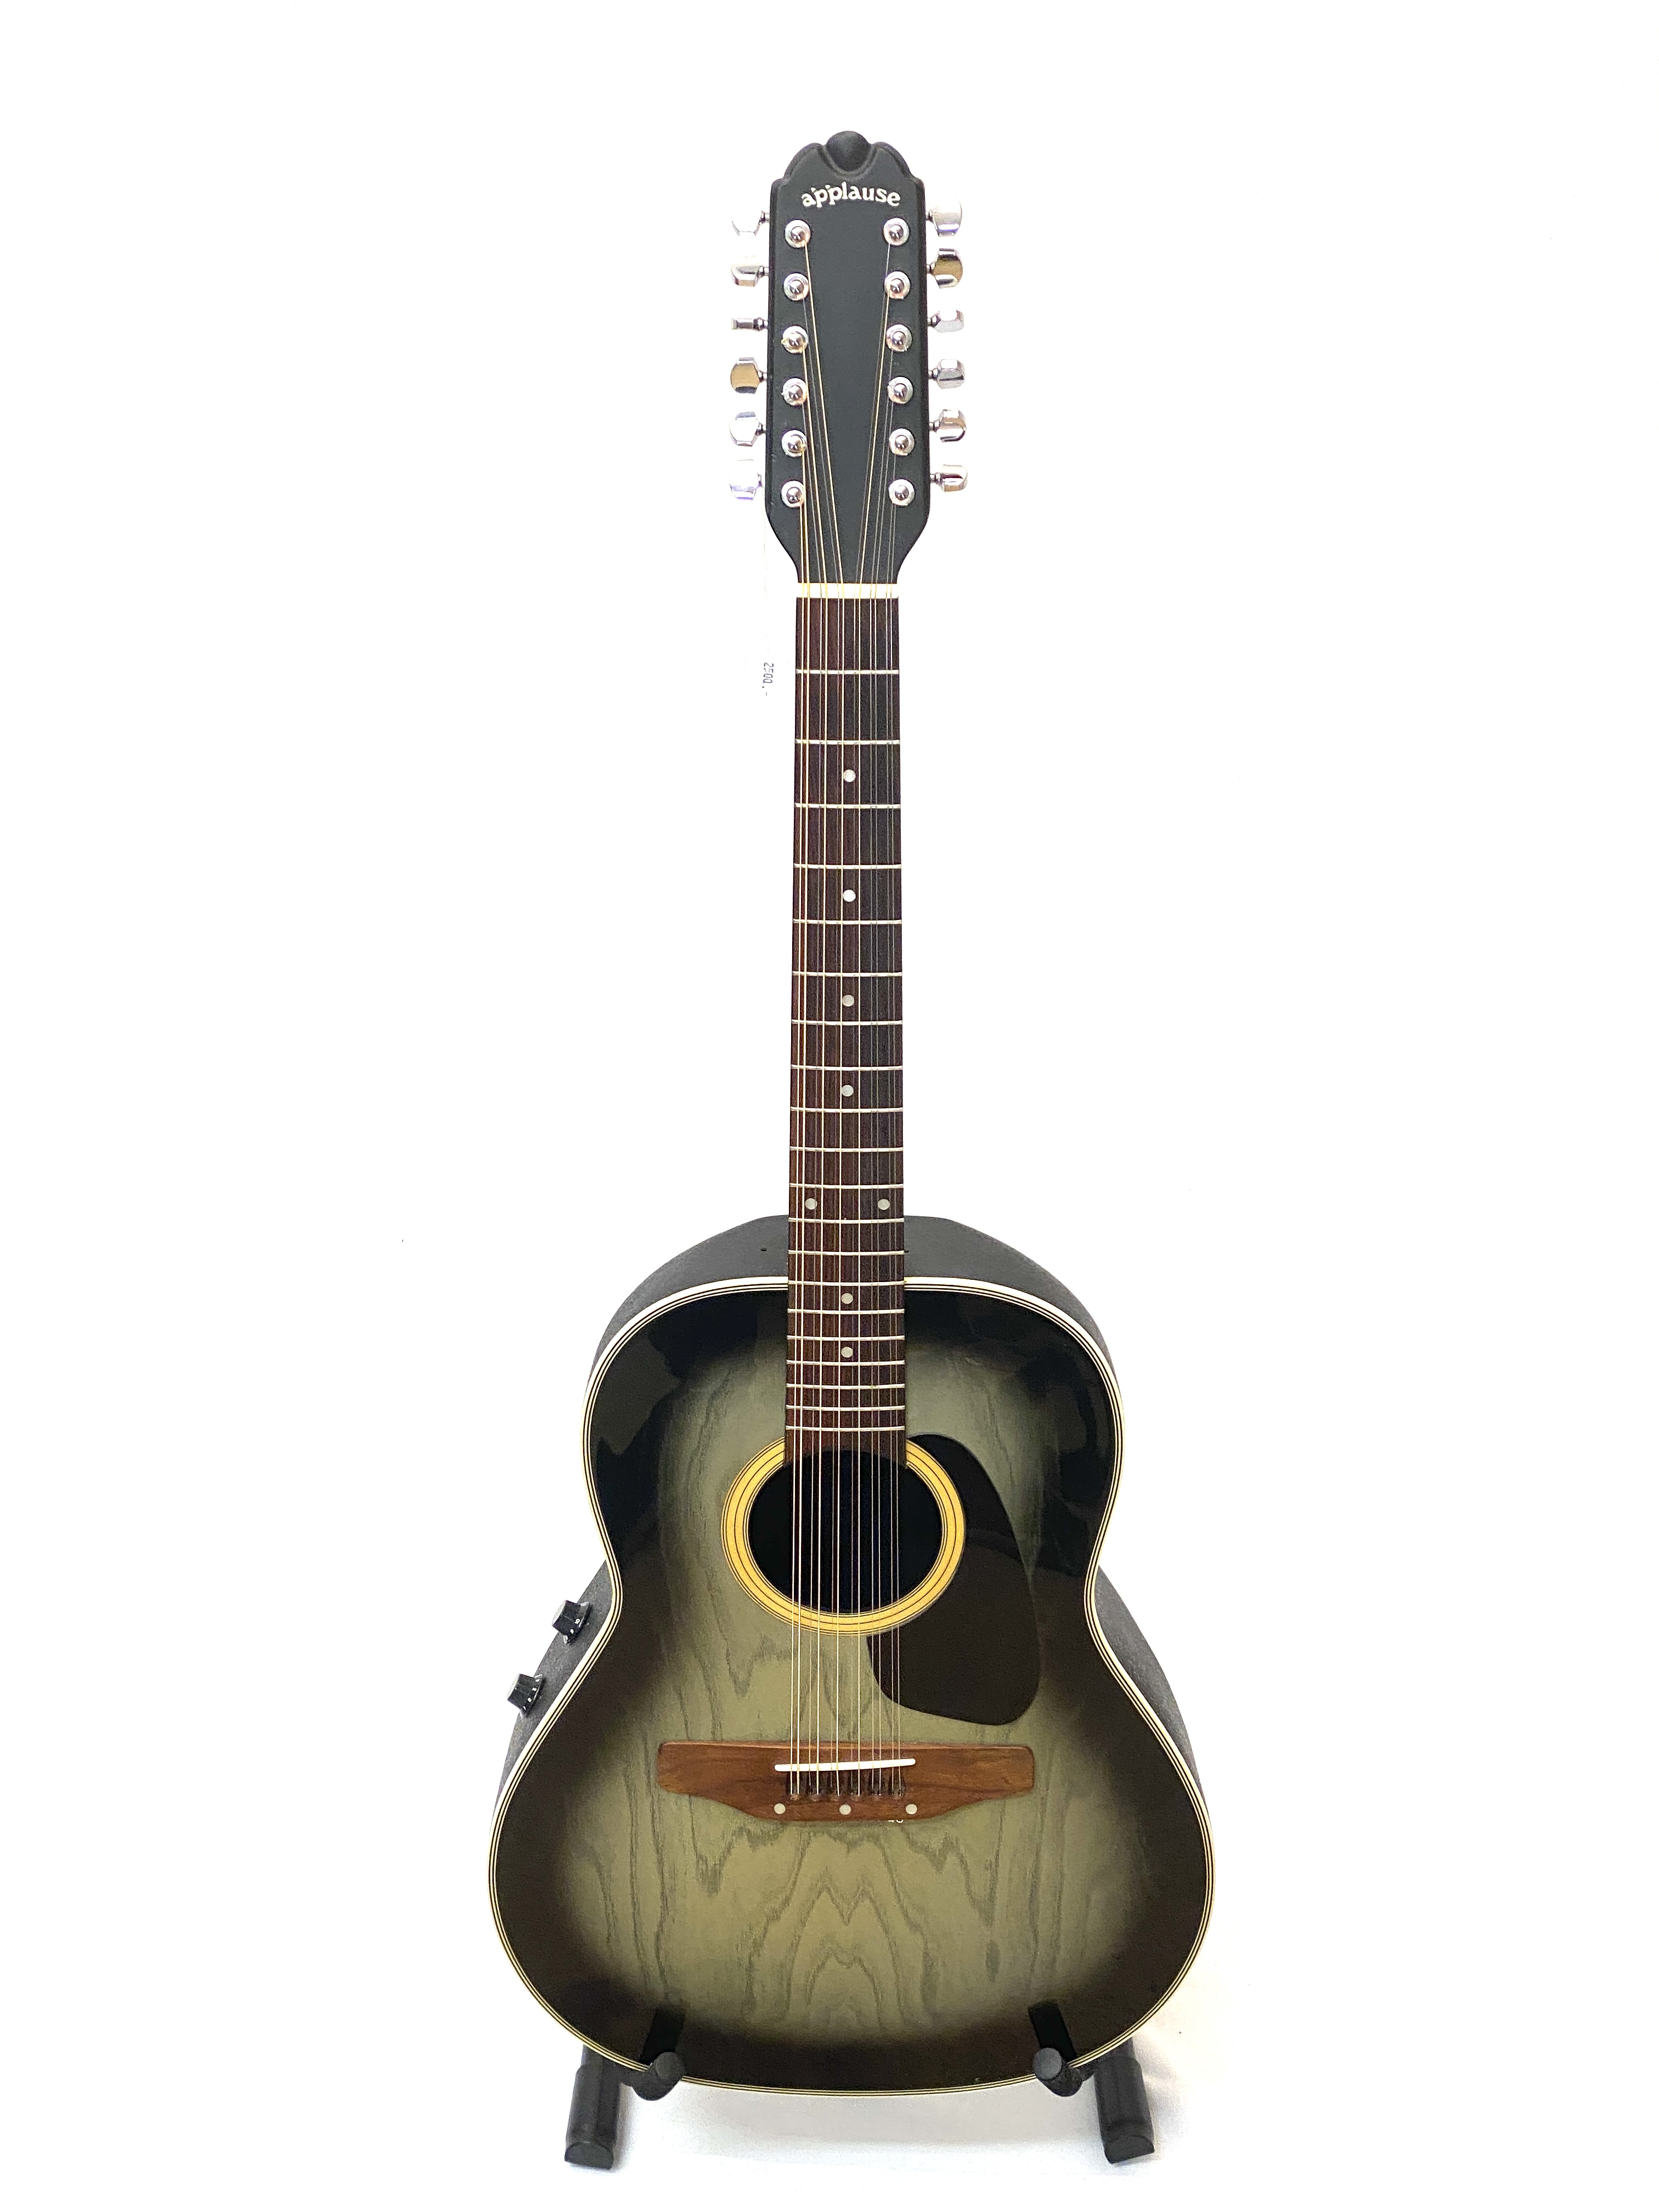 Applause AE-35 12 String